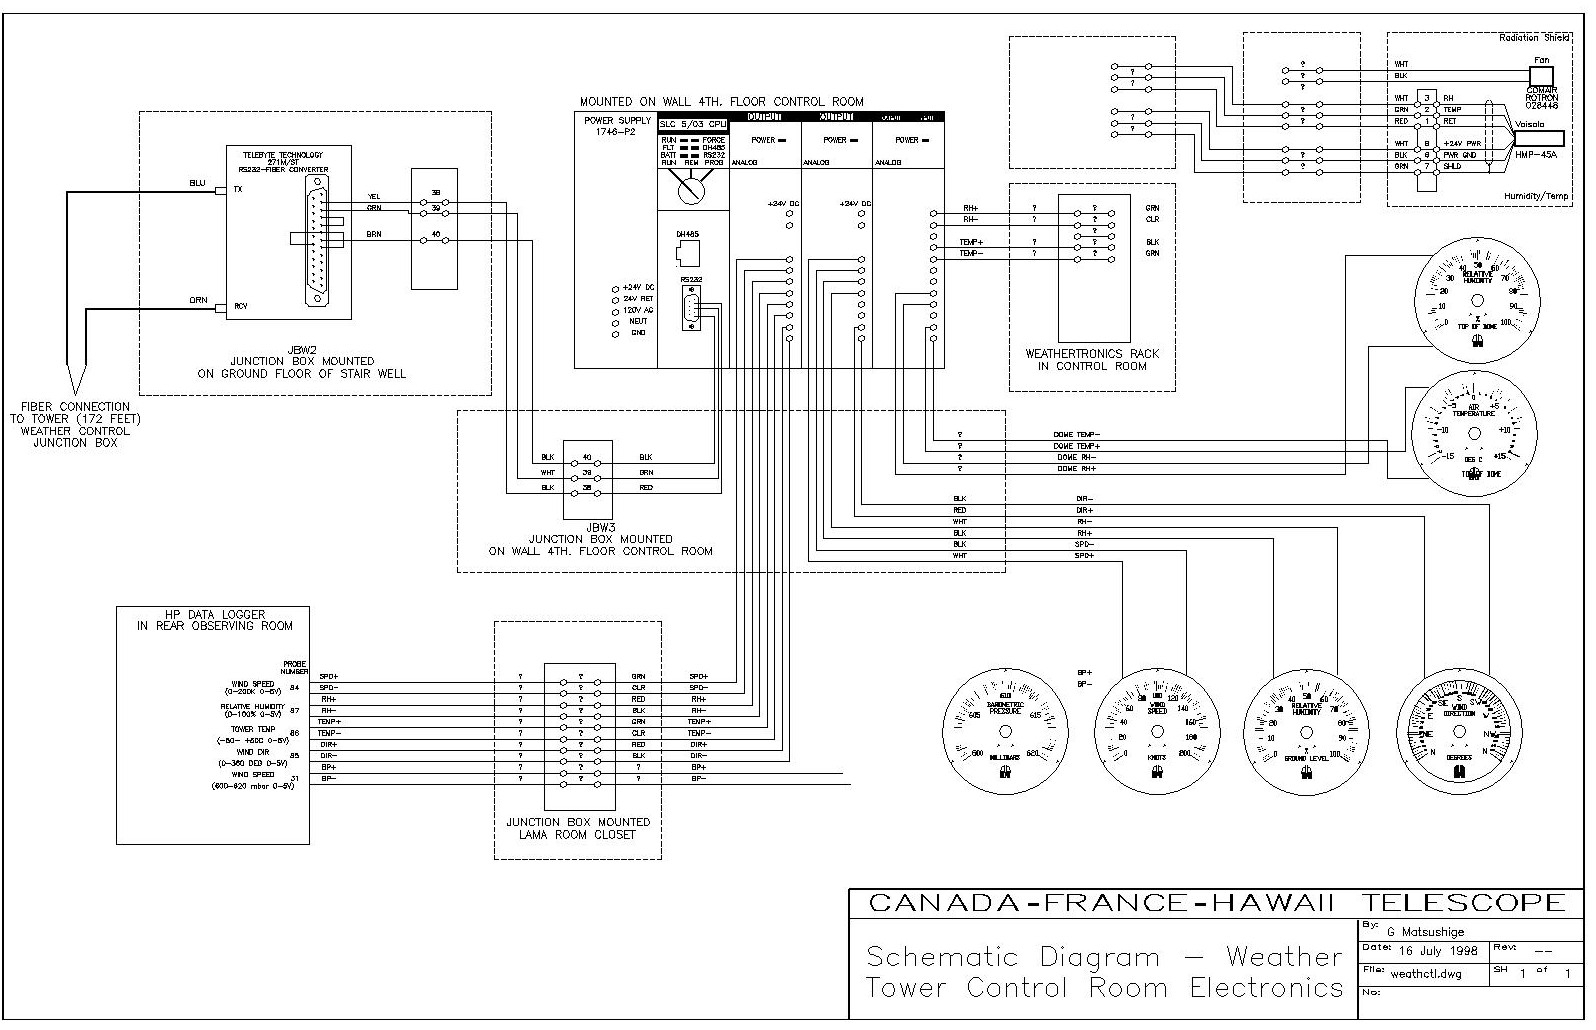 allen bradley wire diagram allen bradley wiring diagram eye